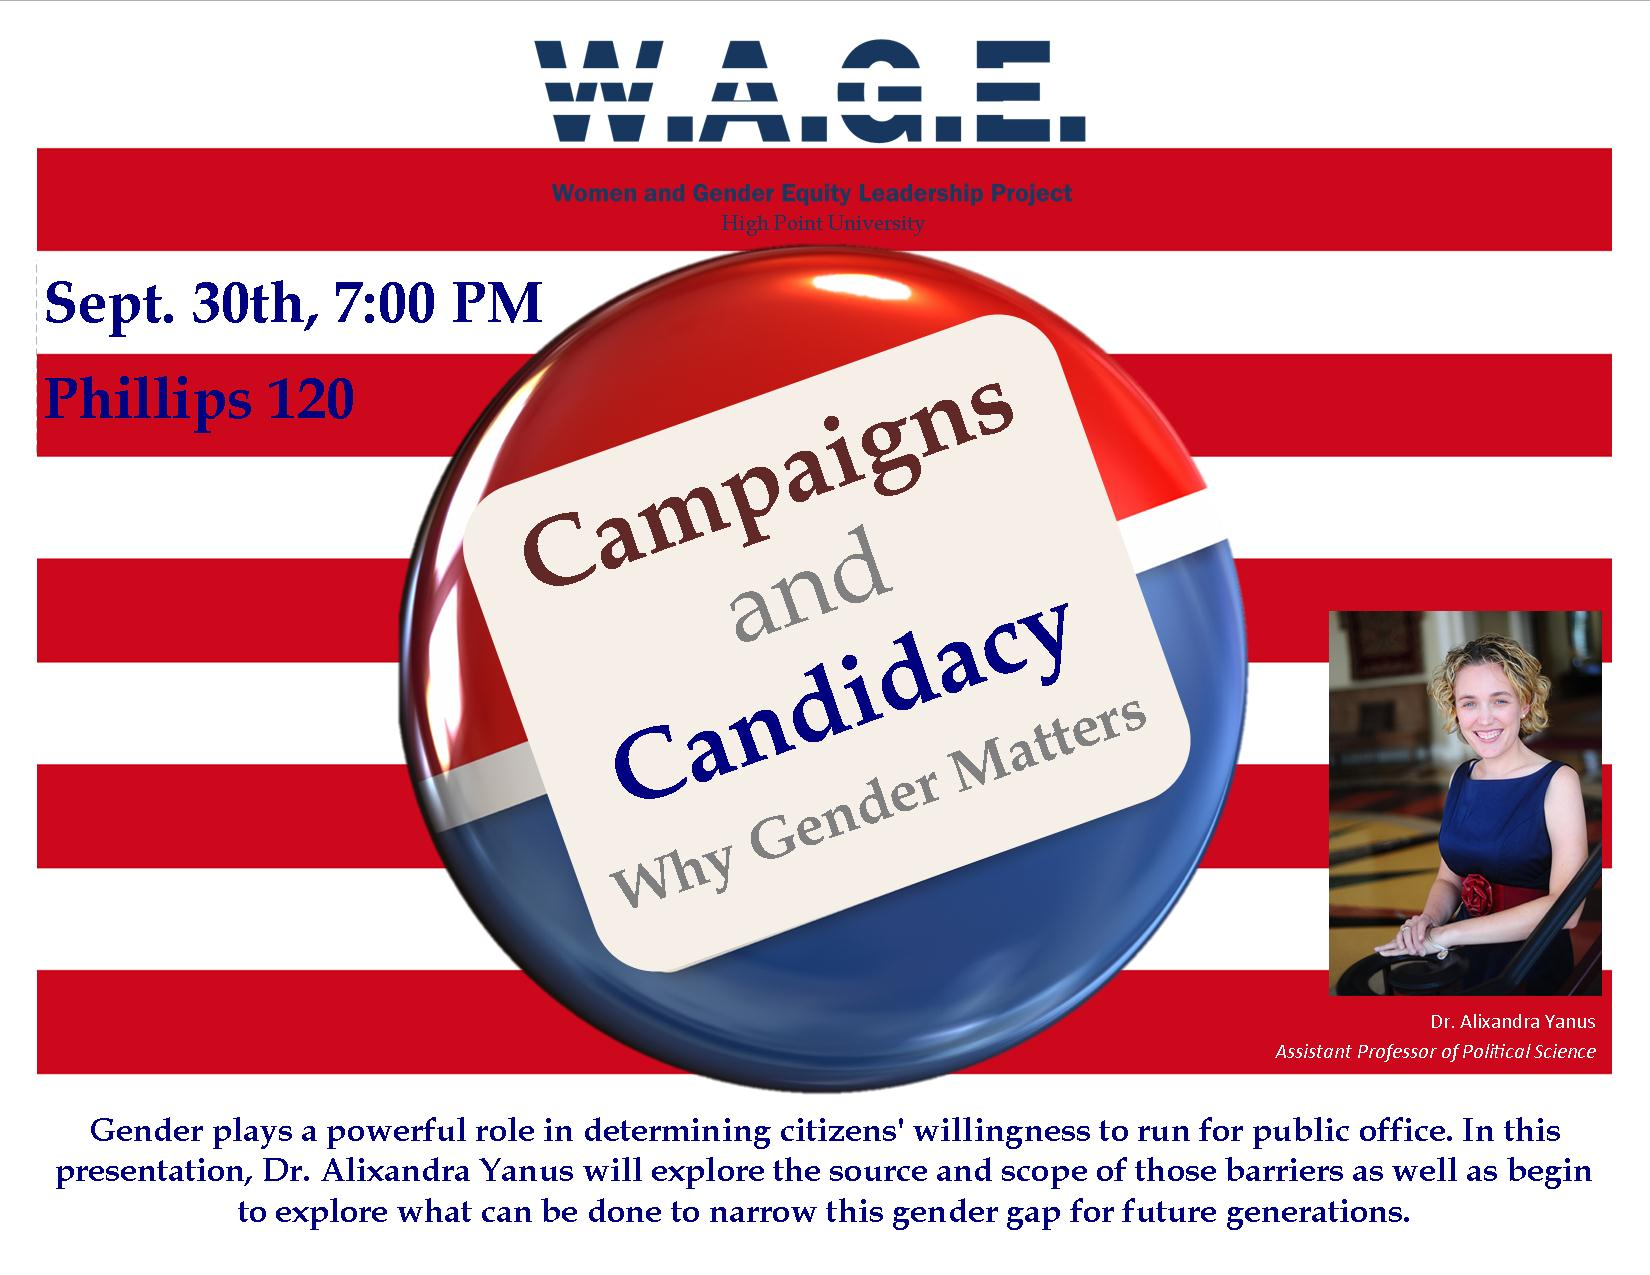 Campaigns and Candidacy